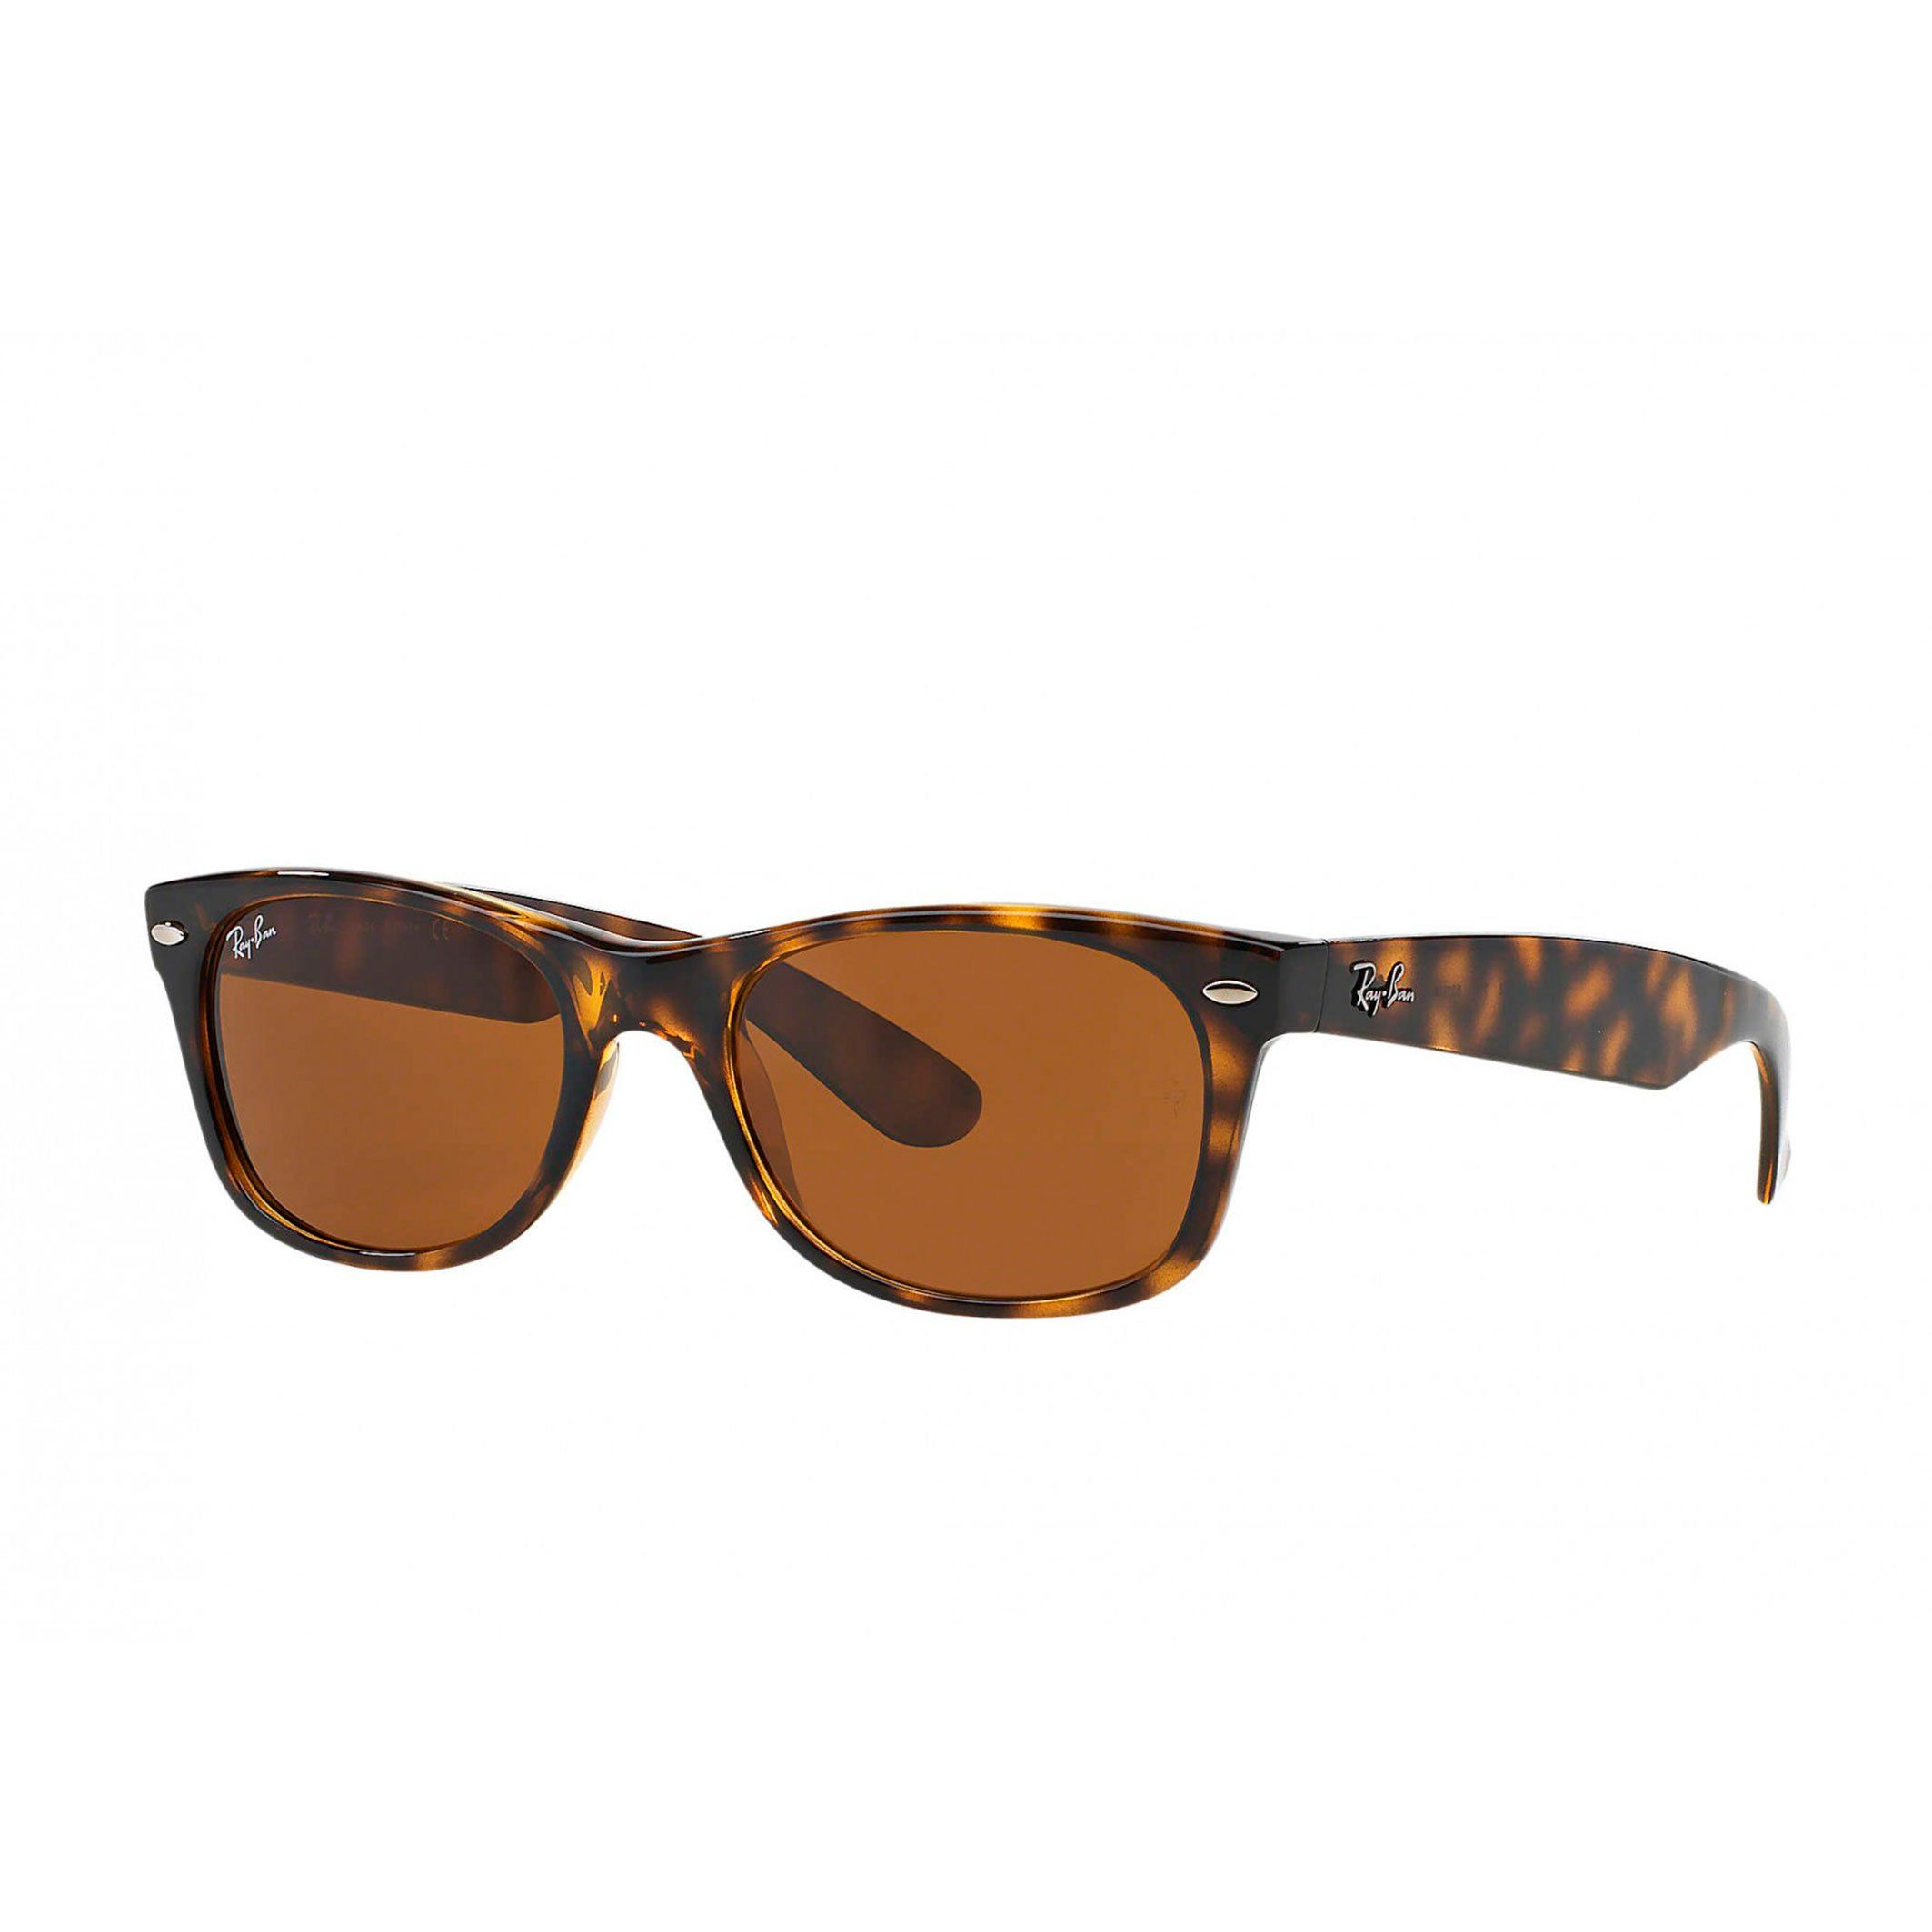 Ray-Ban –   Sunglasses RB2132-52, brown-1 / NOSIZE